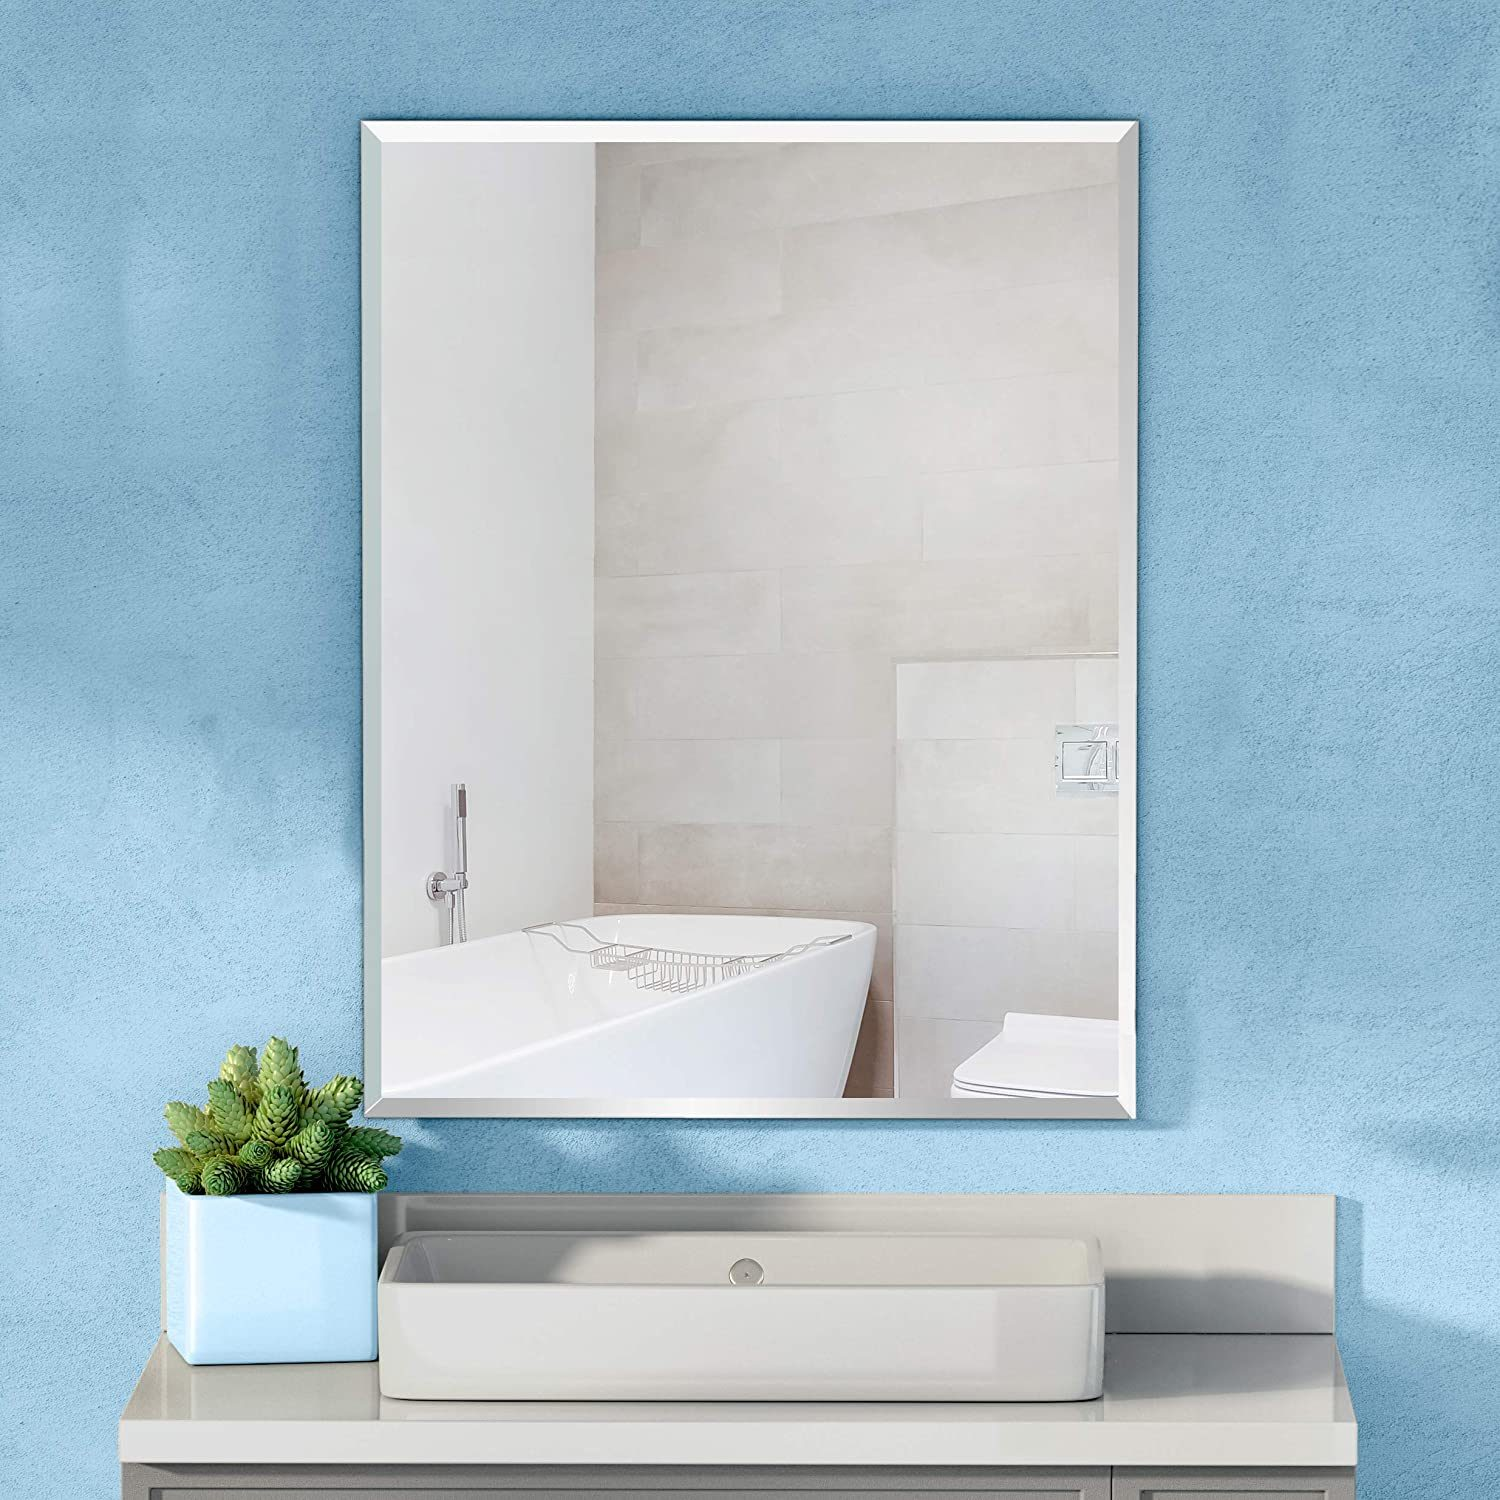 China Round Rectangle Beveled Frameless Wall Mirror For Entrances Bedrooms Washrooms Vanity Mirror Bathroom Mirror Wall Mounted Mirror China Glass Mirror